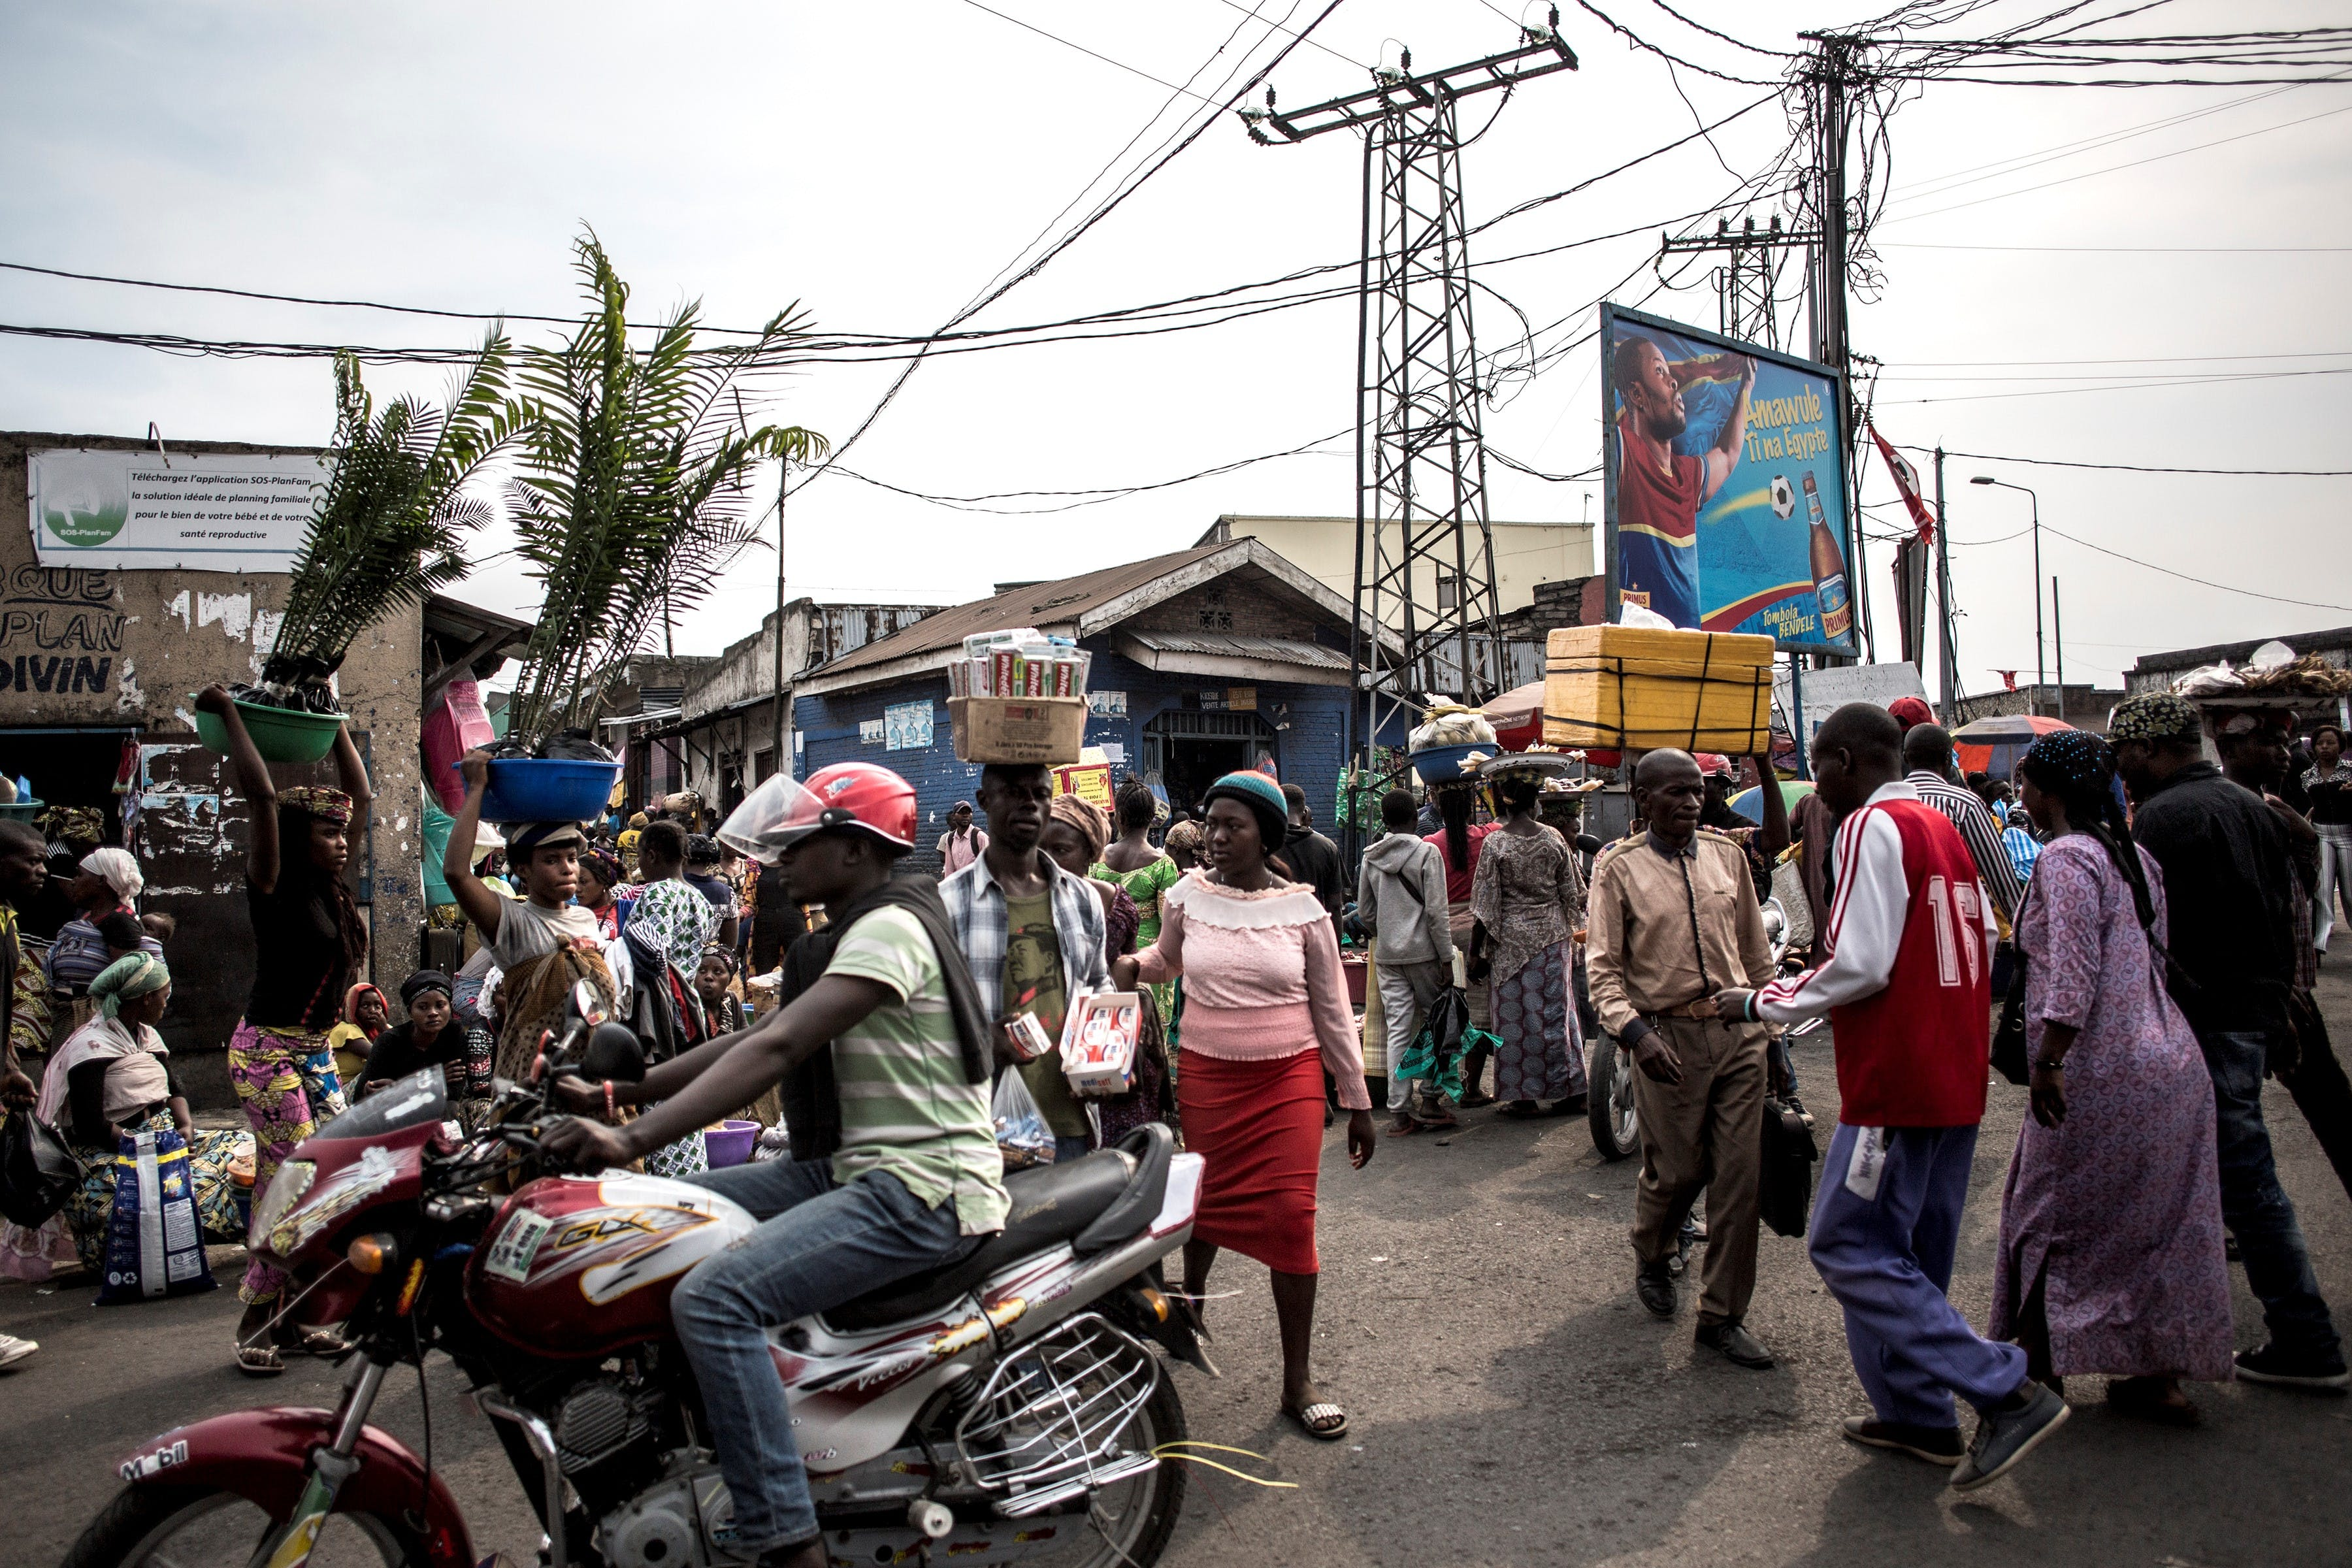 A busy intersection is pictured on July 16, 2019 in Goma. - The border between the DRC and Rwanda in Goma sees around seventy thousand people per day going back and forth. The town of Goma, which has a population of around two million has registered its first official case of Ebola. (Photo by JOHN WESSELS / AFP)